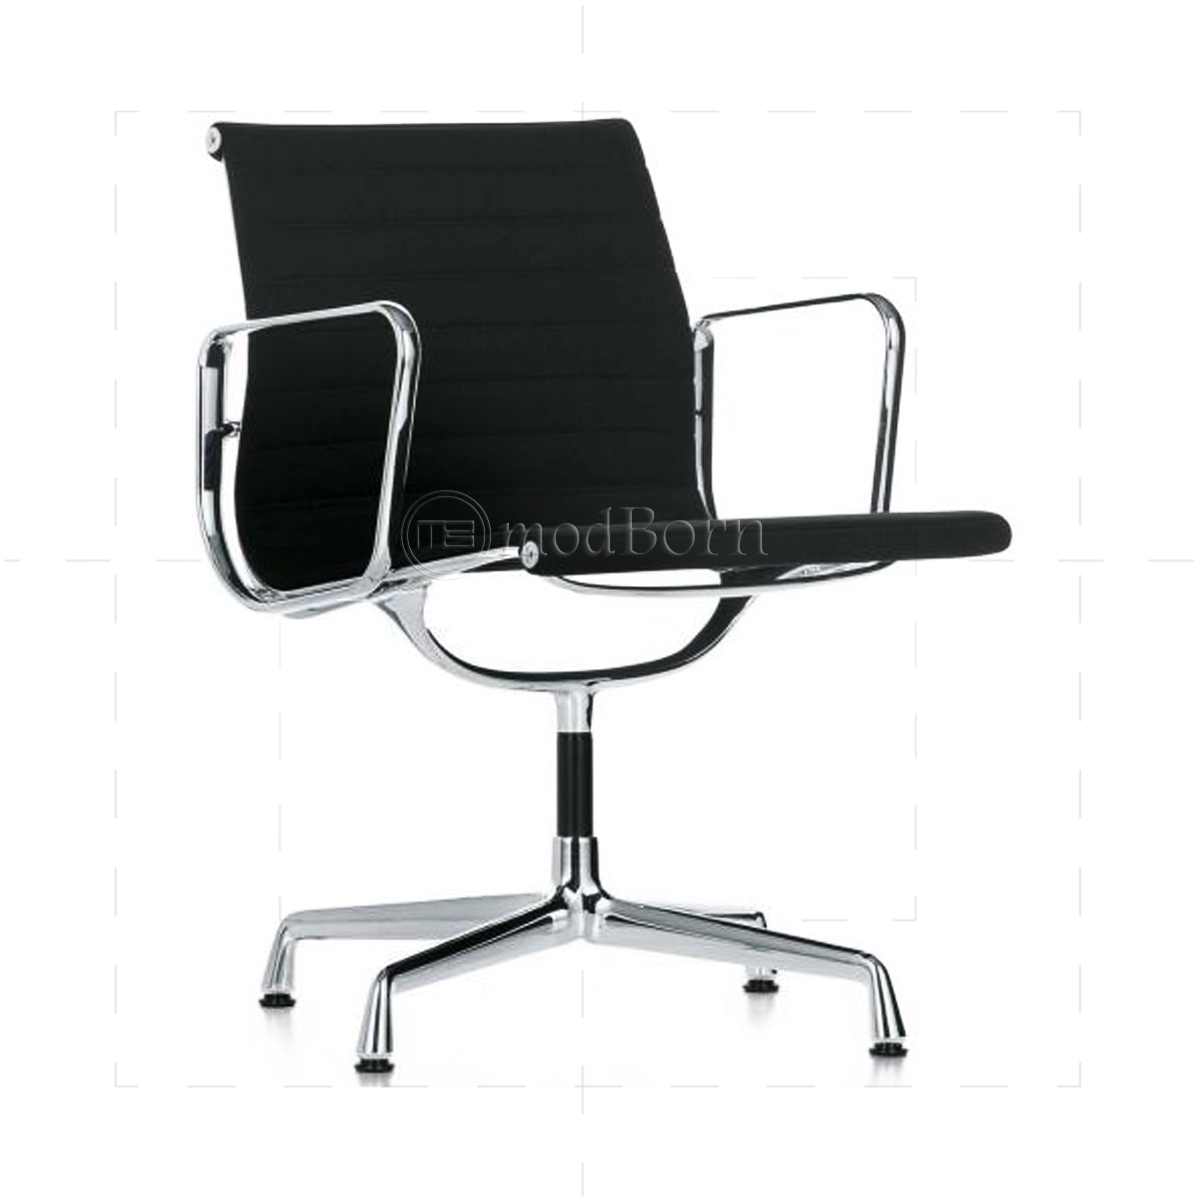 EA108 Eames Style Office Chair Low Back Ribbed Black Leather